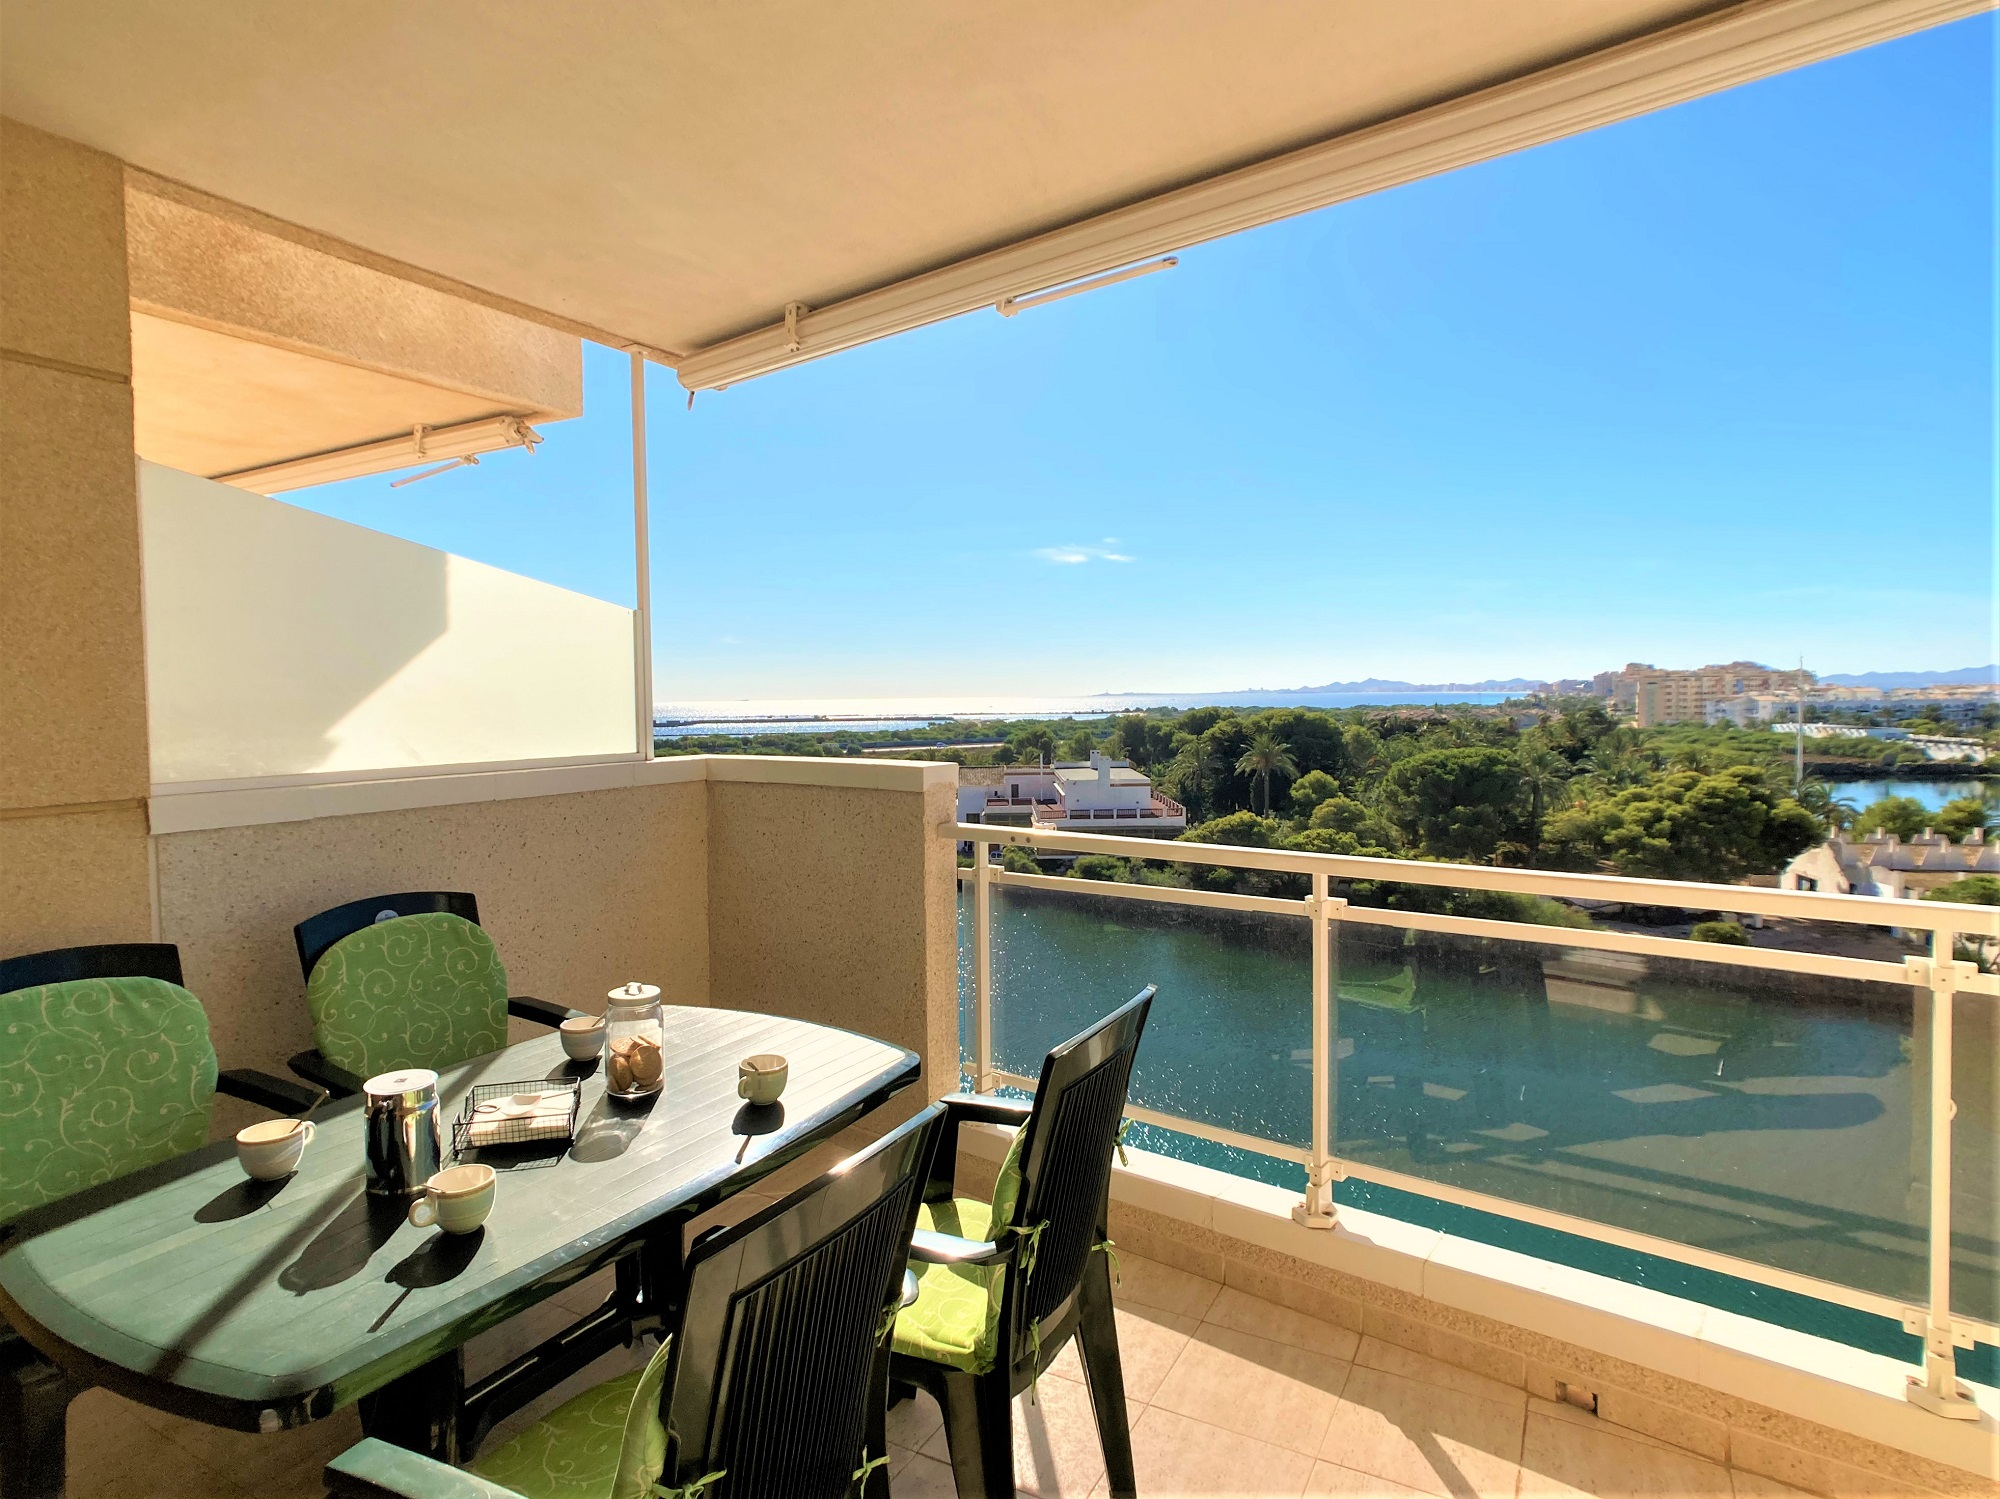 Two bedrooms with views over the Estacio Canal and the Marina